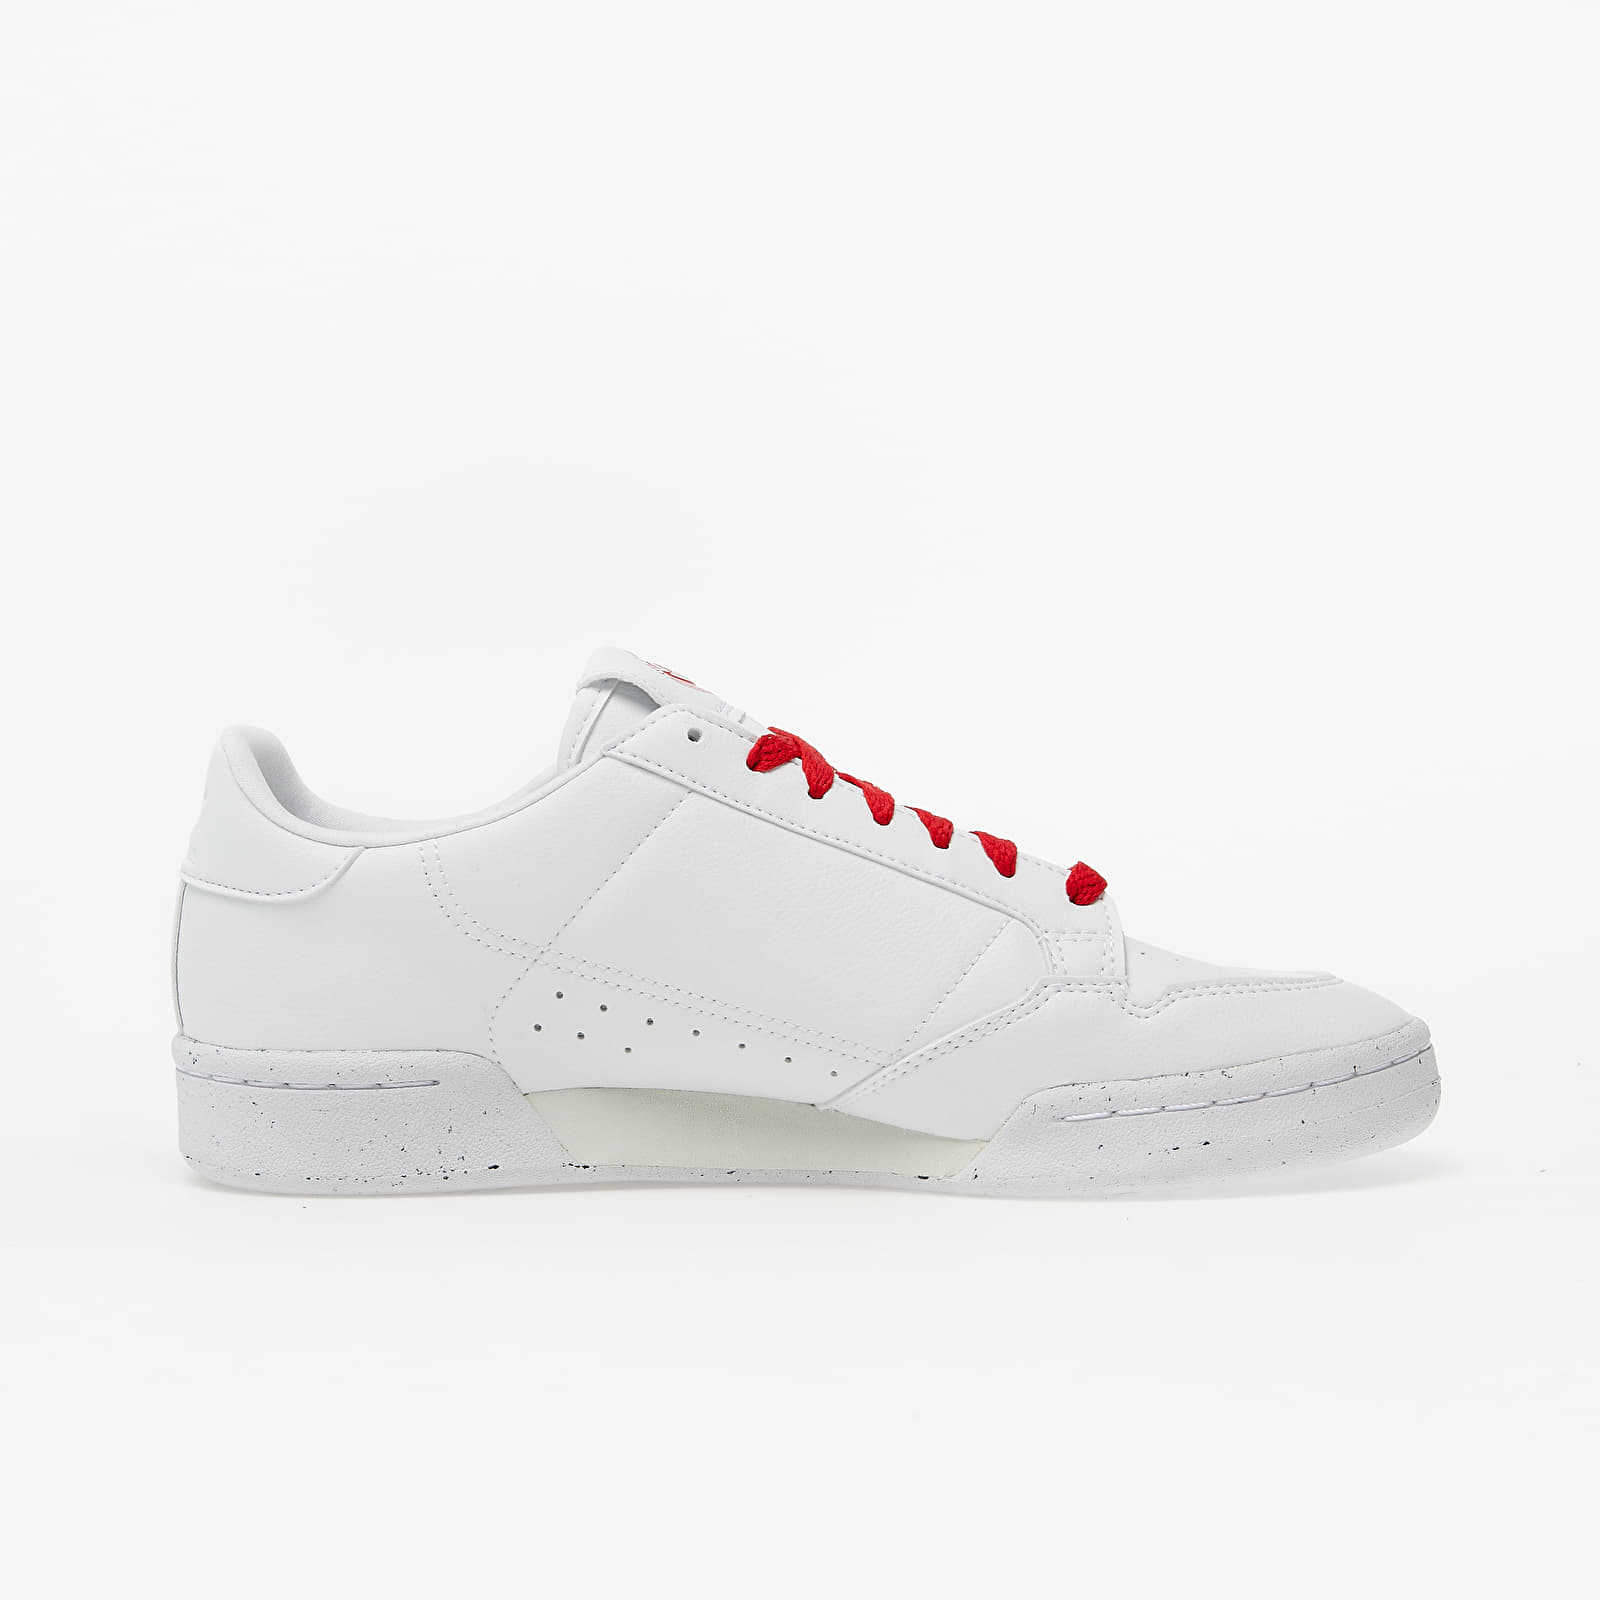 adidas Continental 80 Clean Classics Ftw White/ Ftw White/ Scarlet